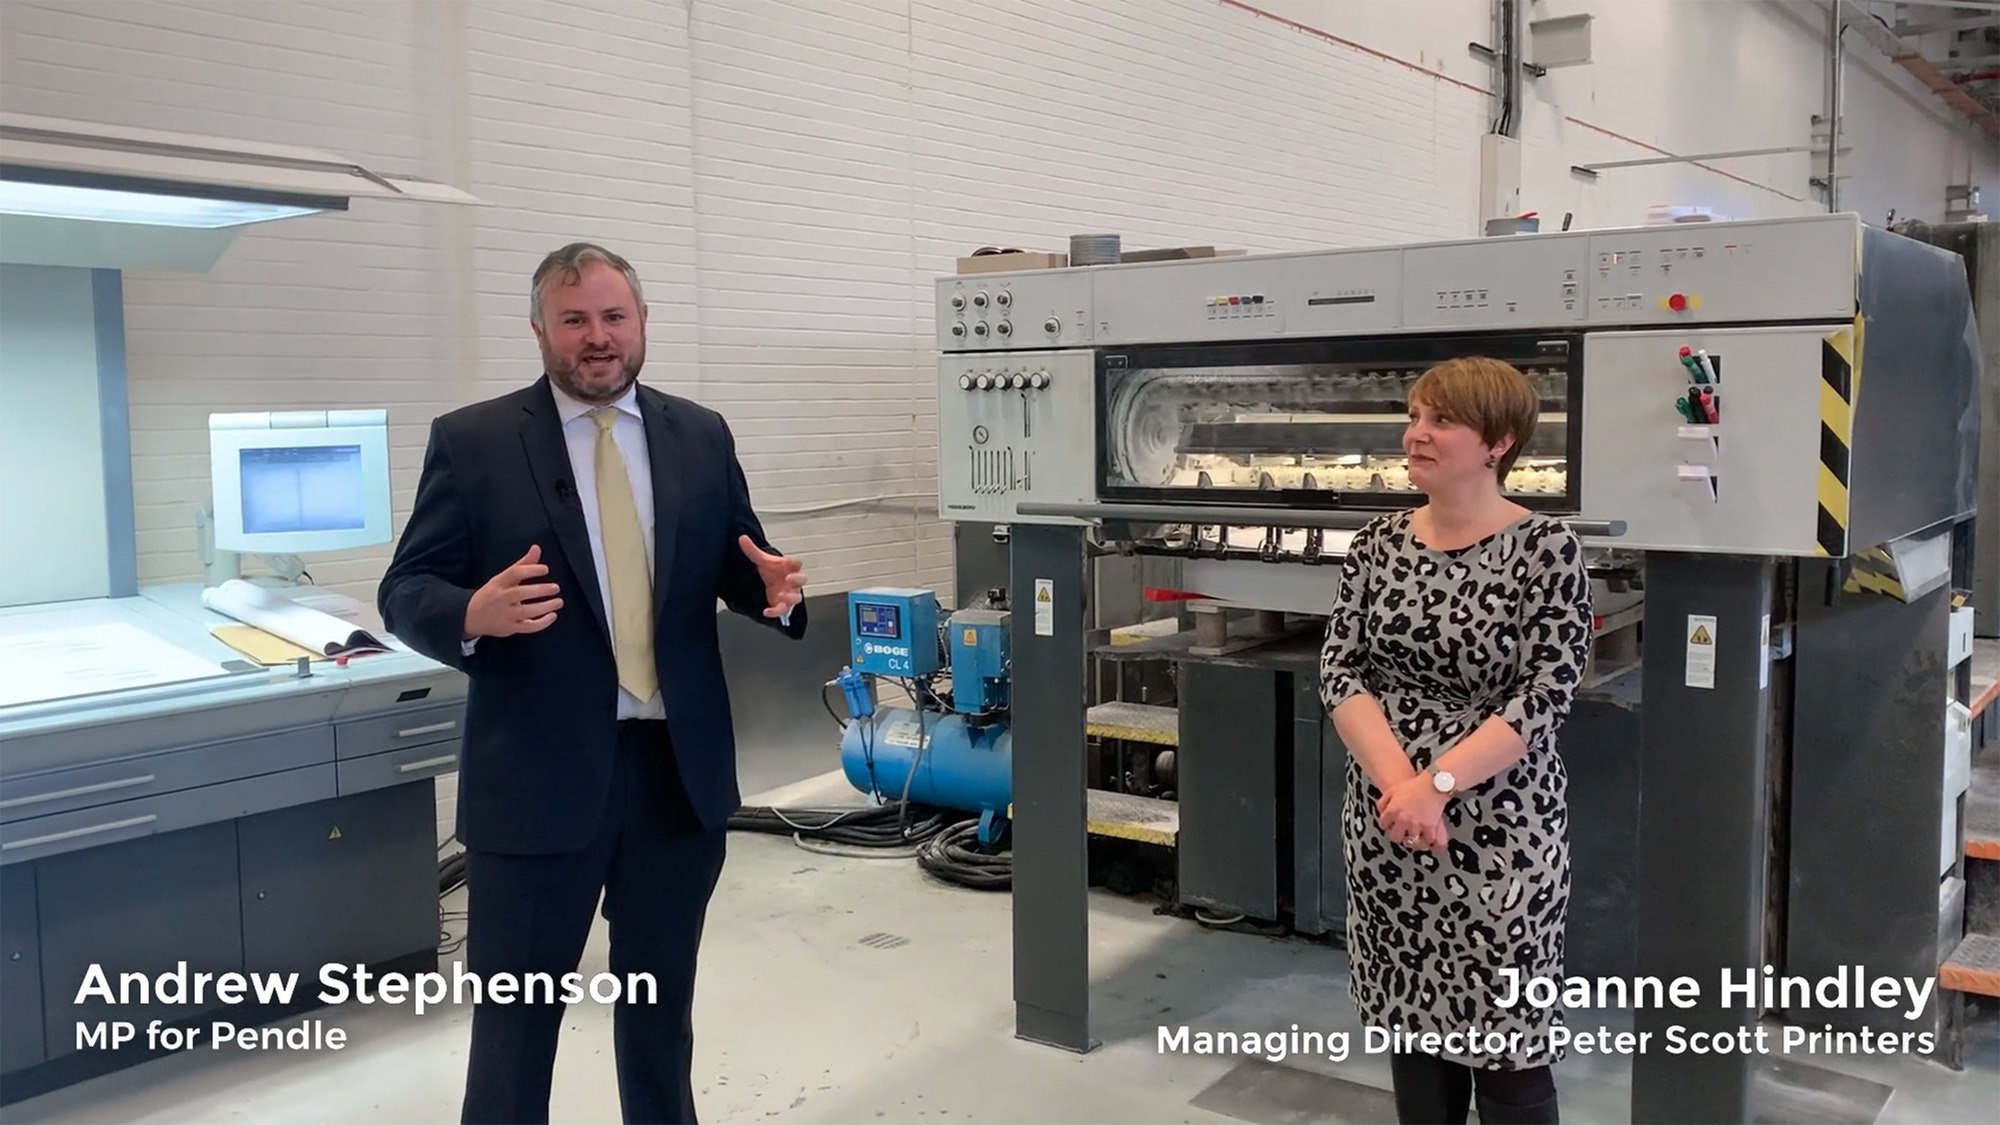 Andrew Stephenson - MP for Pendle with Peter Scott Printers' Managing Director, Joanne Hindley